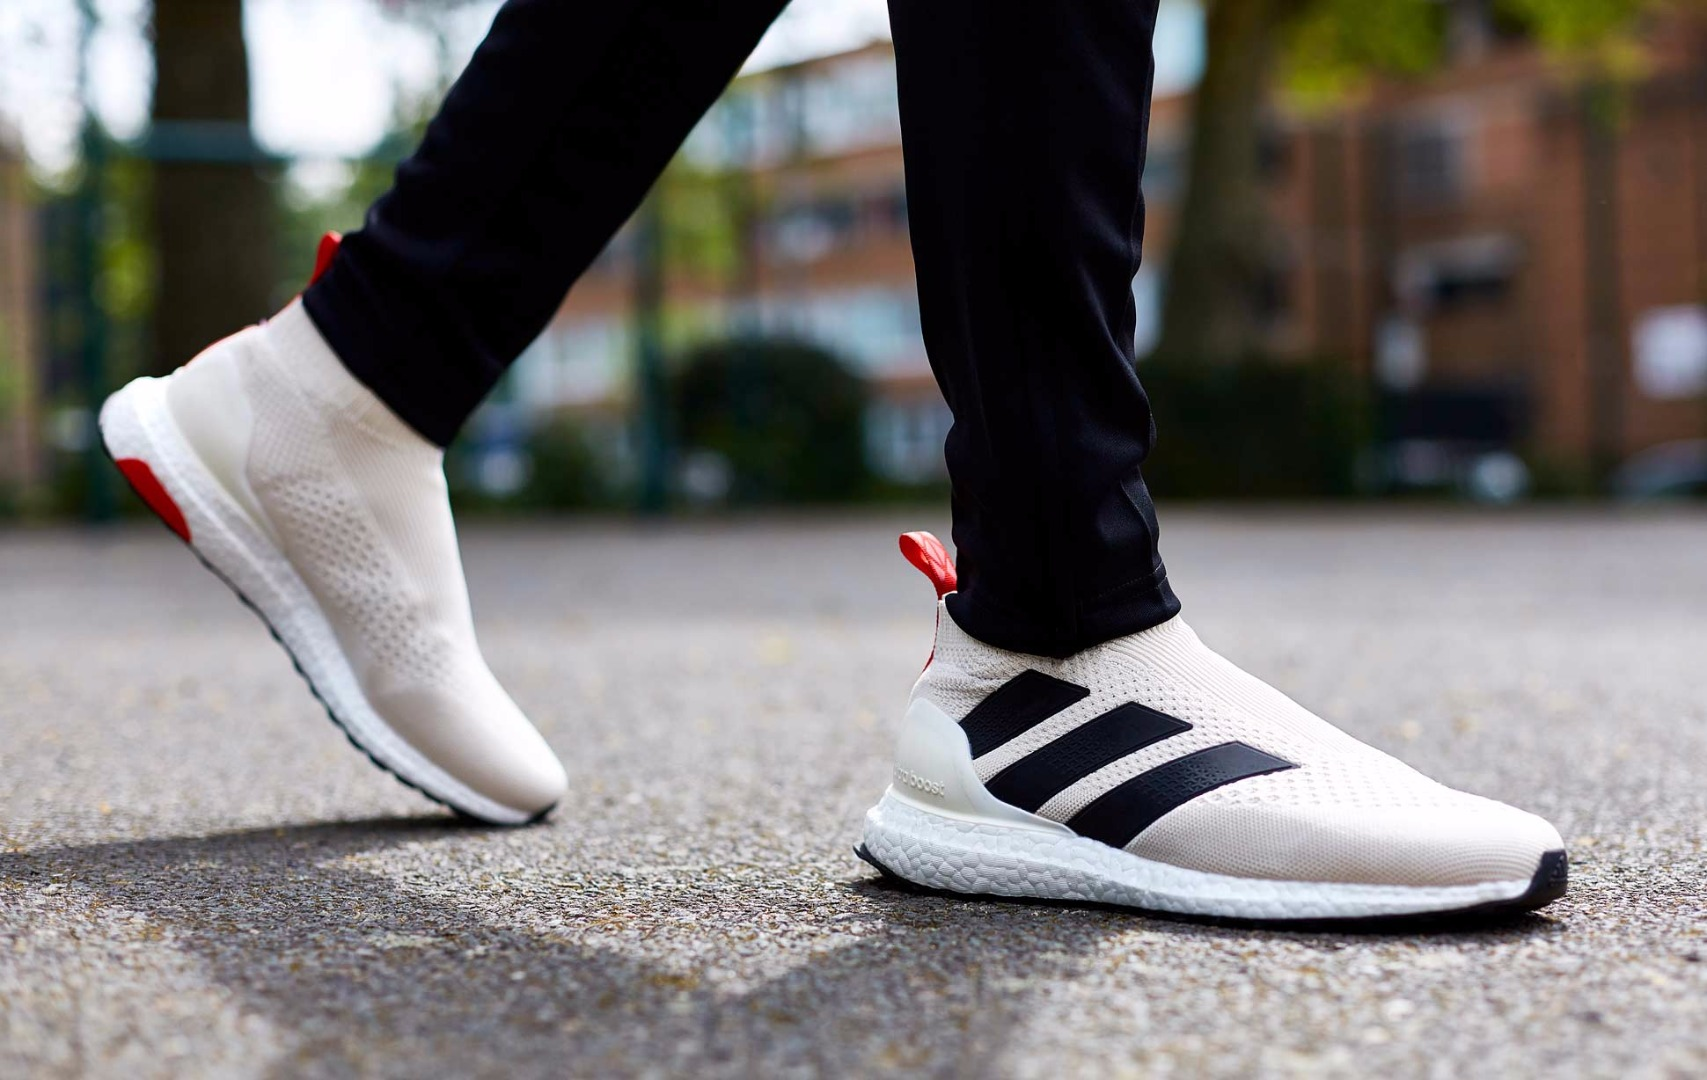 adidas ACE 16+ Purecontrol Predator Pack Boost & Boots